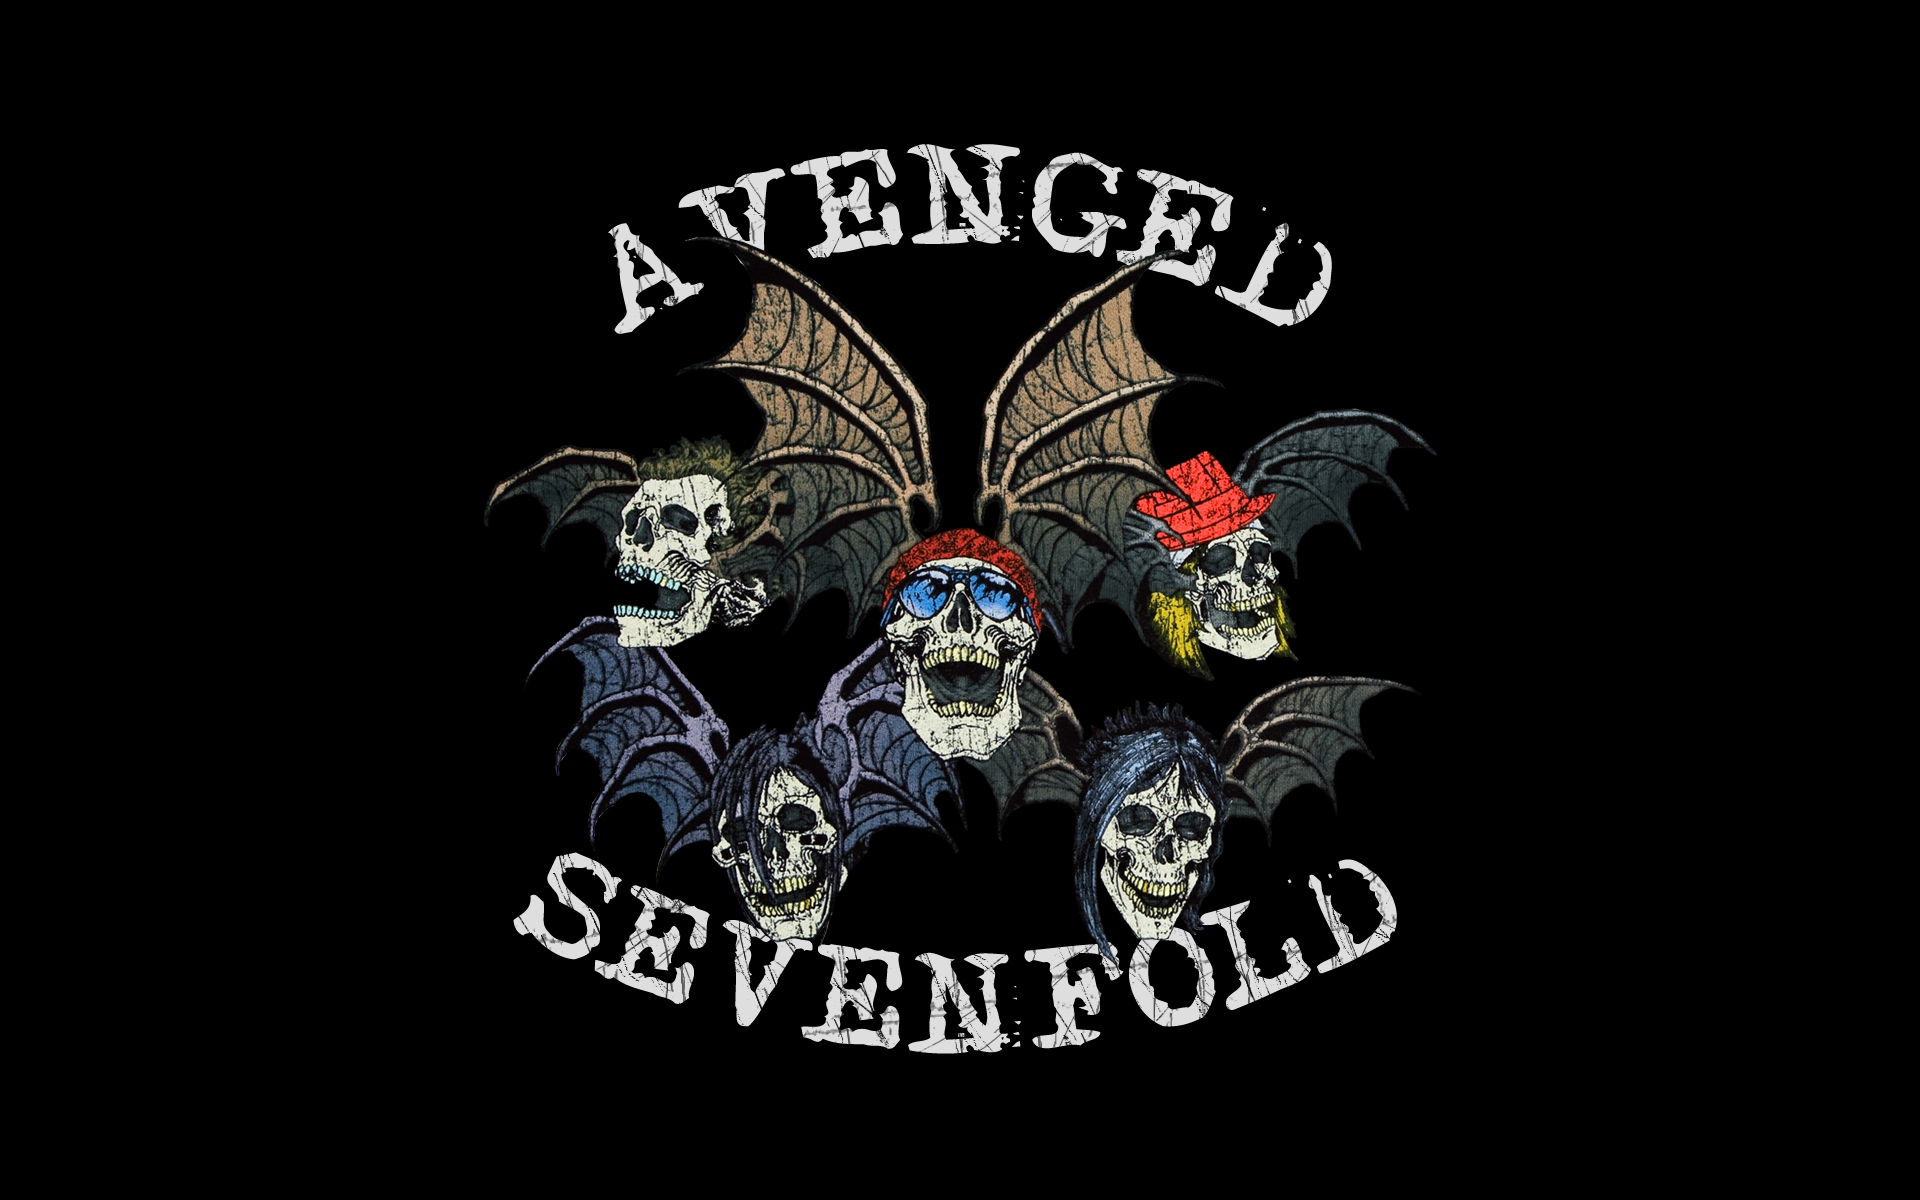 Avenged Sevenfold Wallpapers HD Download 1920x1200